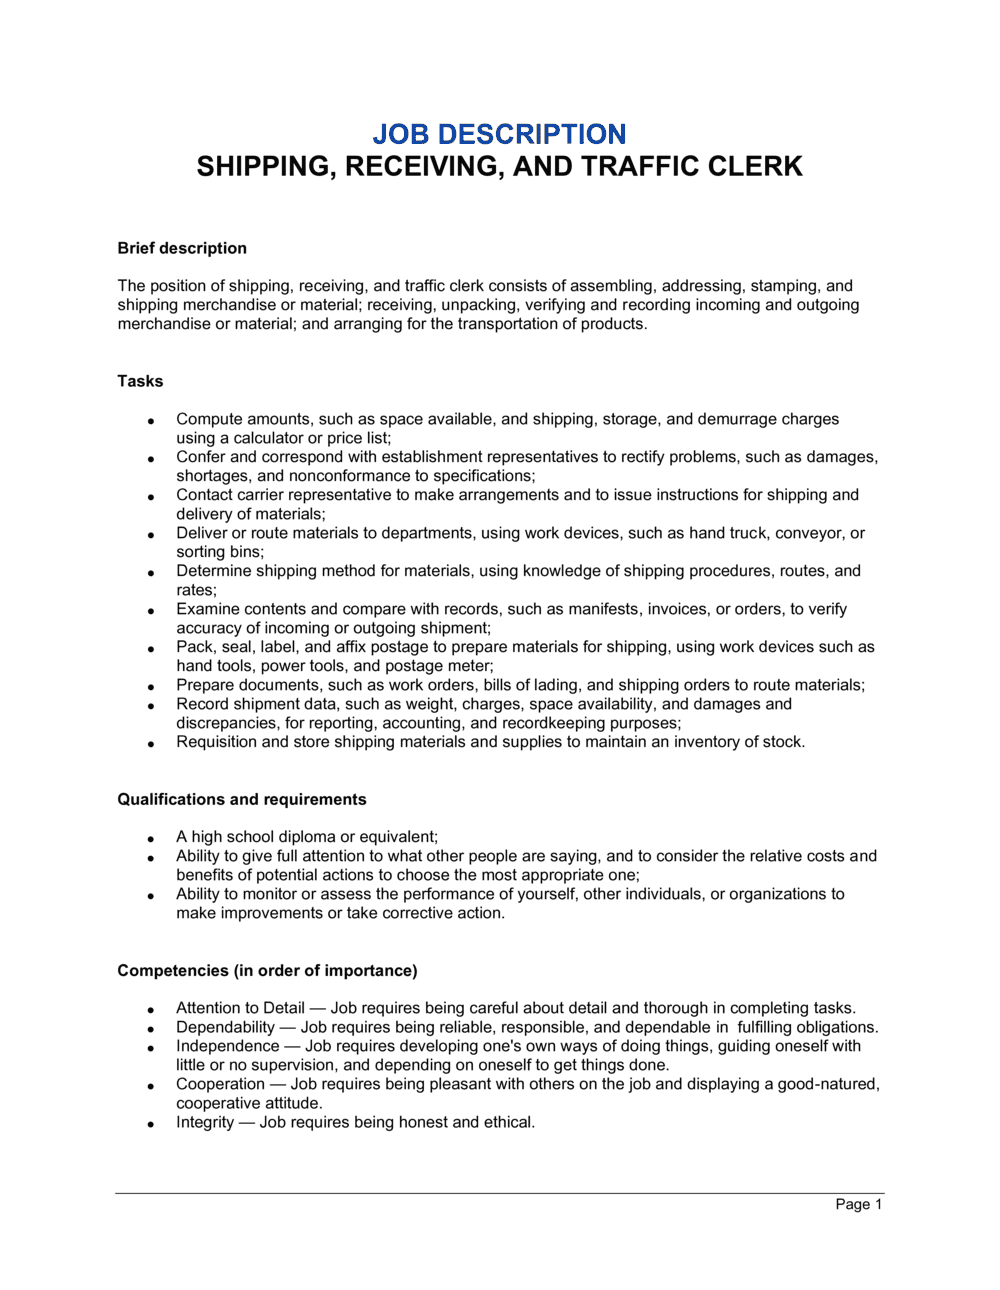 Business-in-a-Box's Shipping, Receiving and Traffic Clerk Job Description Template